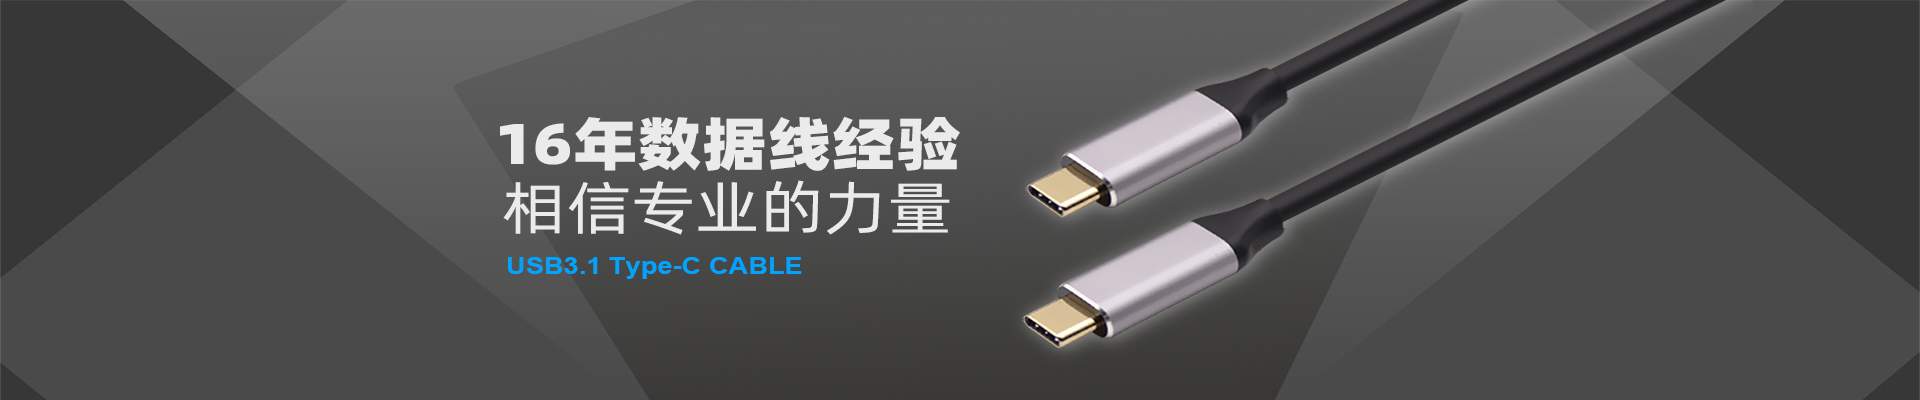 USB3.1 TYPE-C CABLE